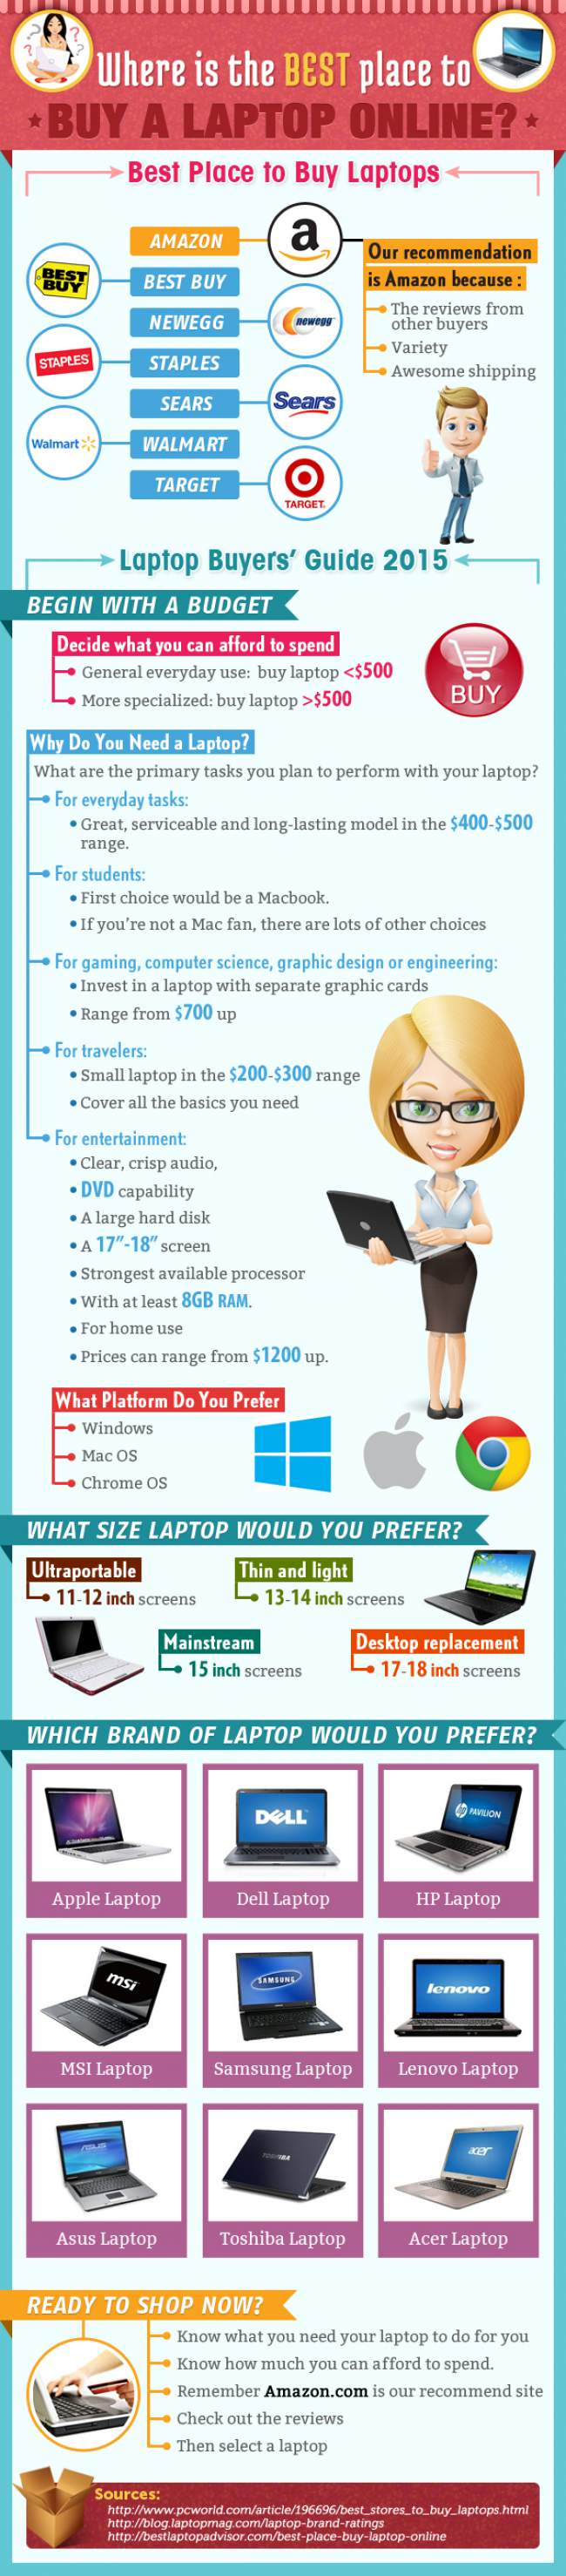 38+ Where is the best place to buy a laptop information